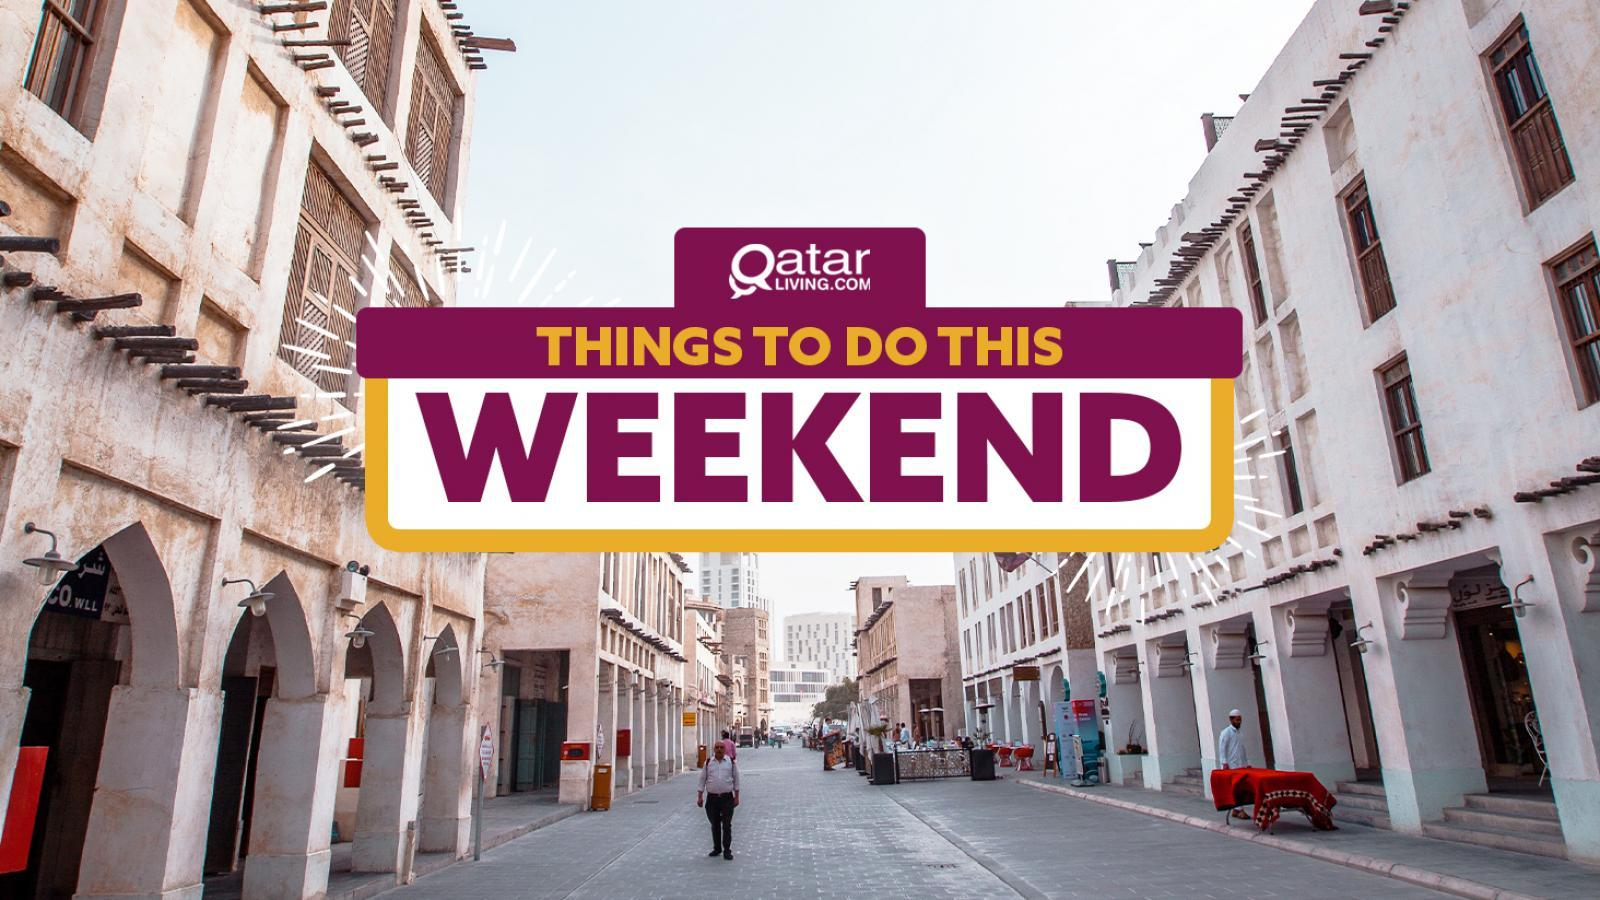 Five things to do in Qatar this weekend: November 19-21